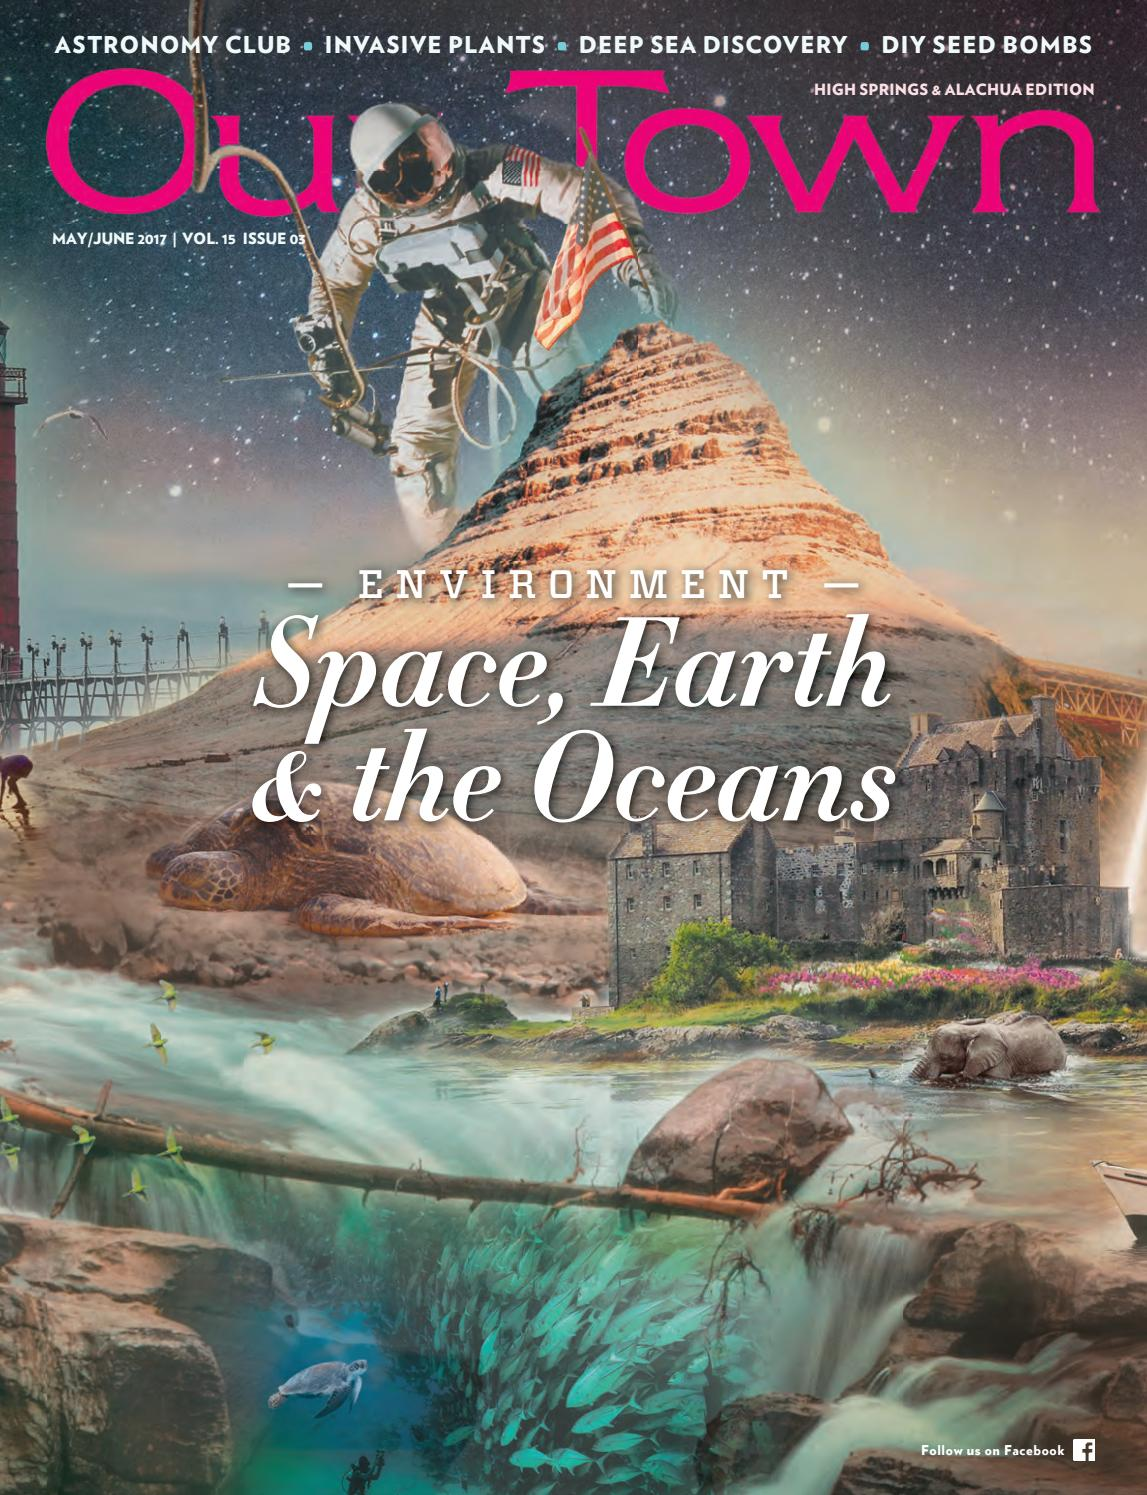 ccb83b8f9a76 Our Town 2017 MAY-JUN (High Springs   Alachua) by Tower Publications - issuu